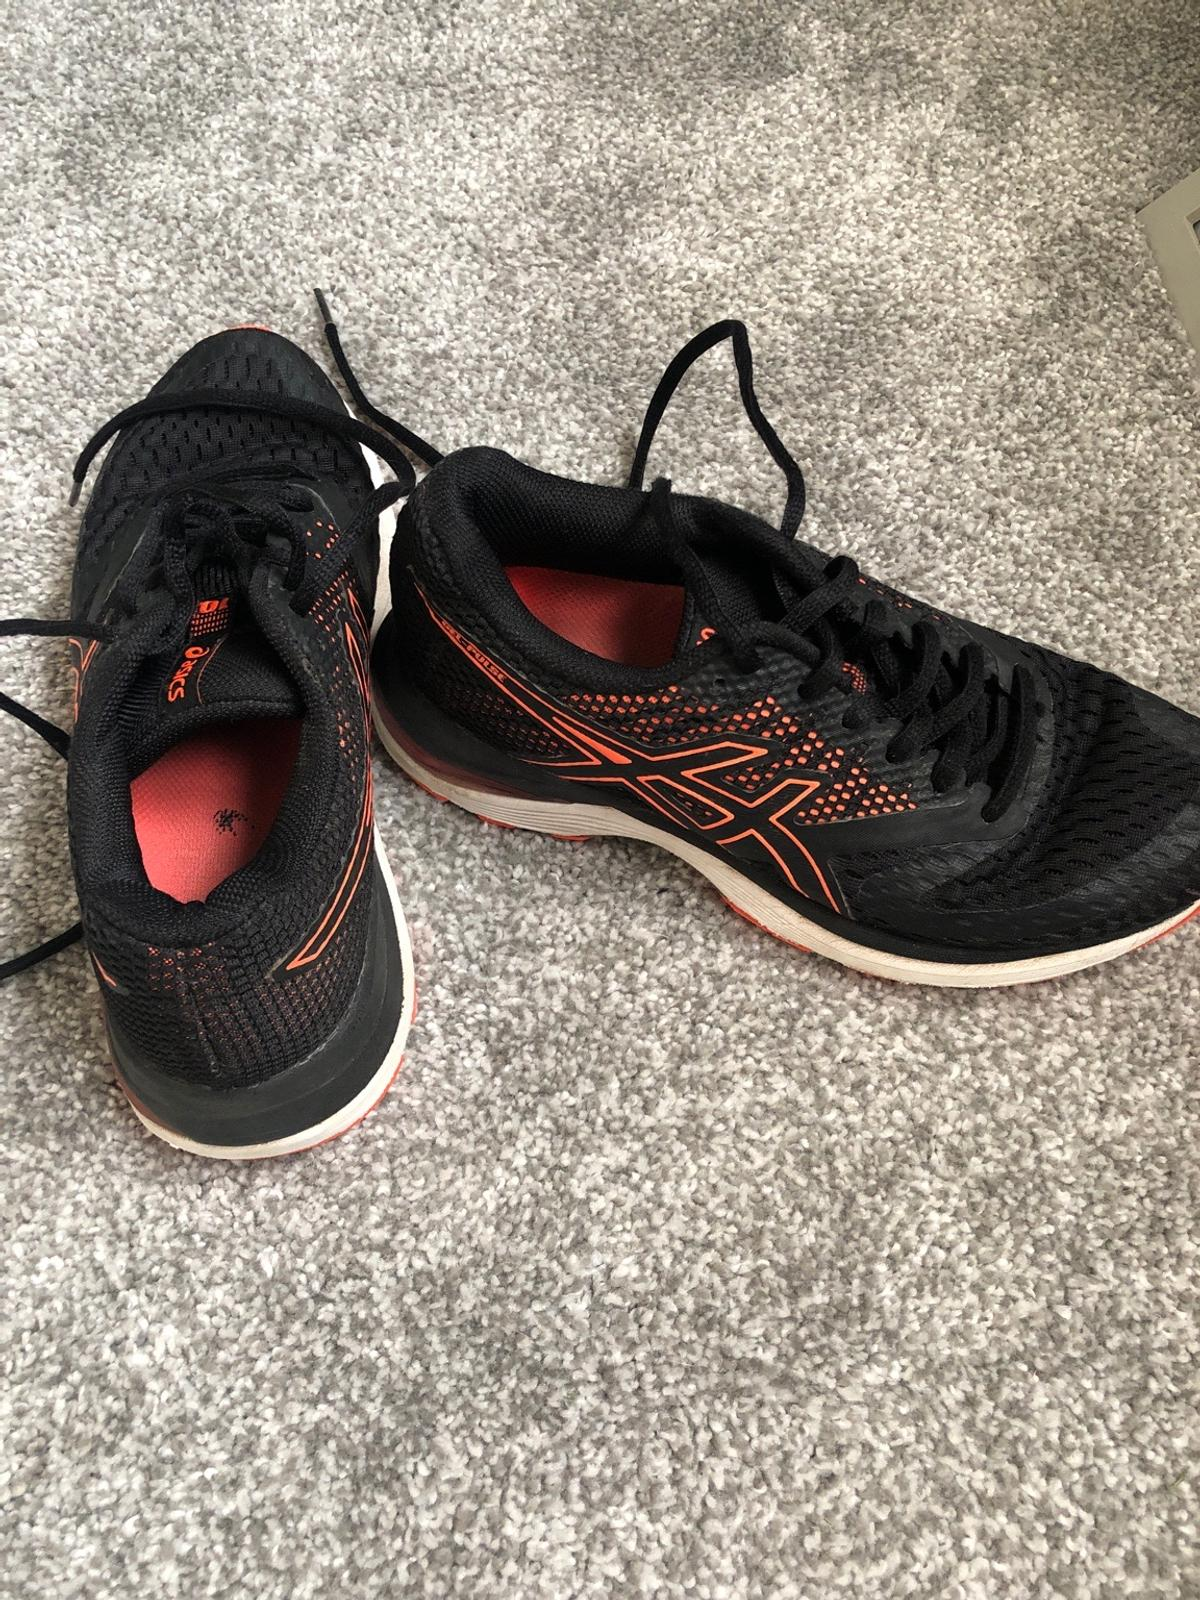 Black and orange netball / court shoe  Size 35.5 Europe / 5 US which is converted to a size three.  Worn but in fair condition.